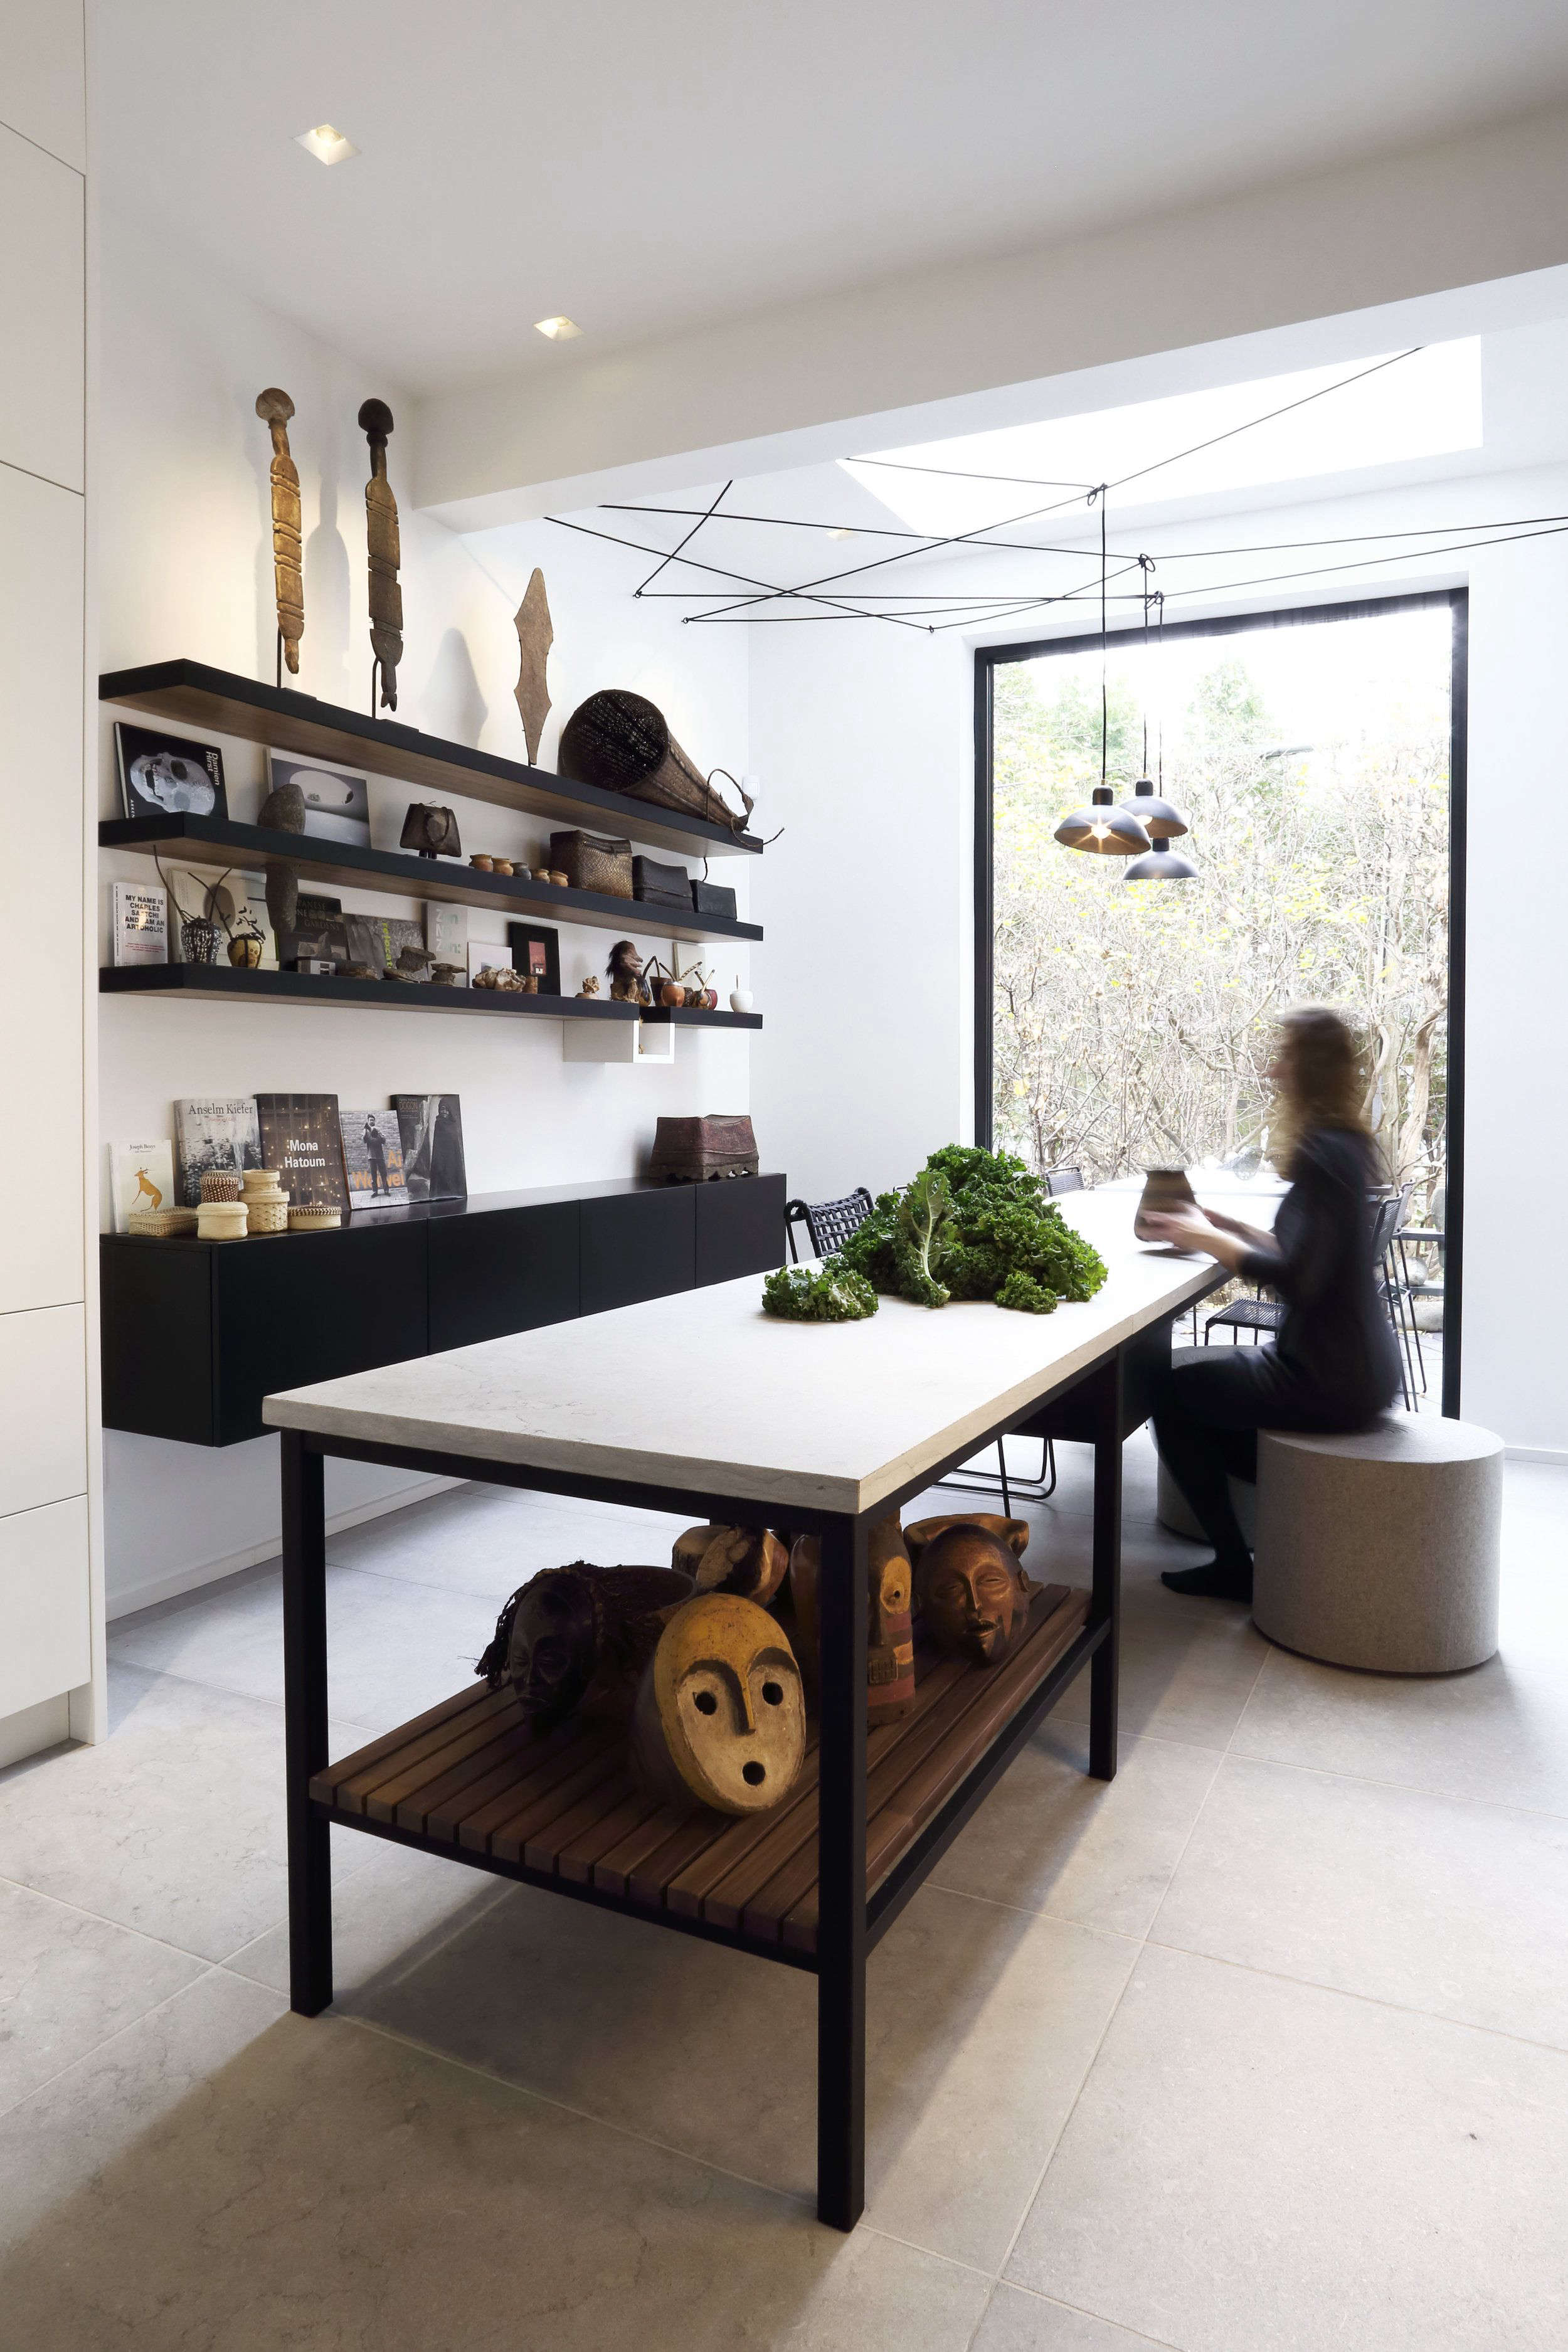 Kitchen of the Week: Art Gallery as Kitchen in Montreal - Remodelista